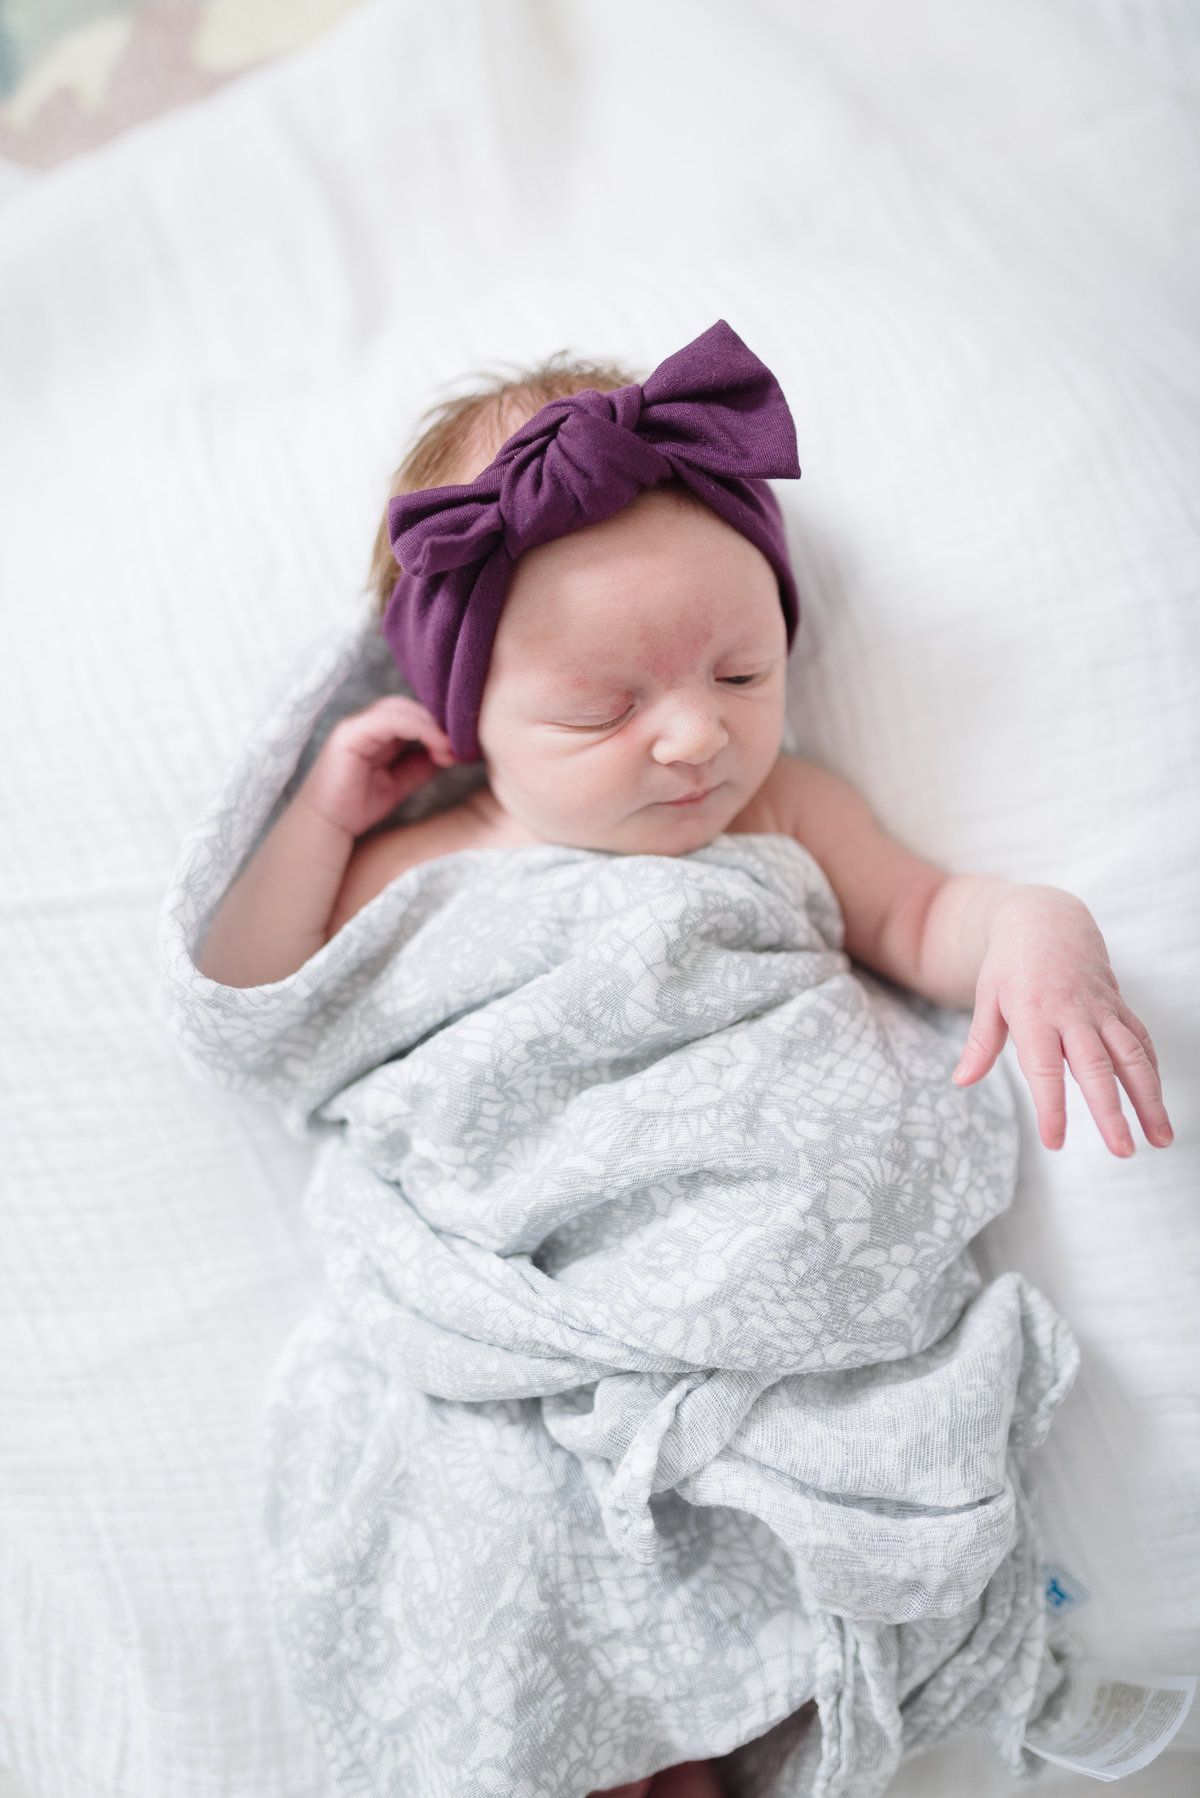 Newborn Baby Girl is wearing a purple headwrap and is wrapped in a gray swaddle blanket